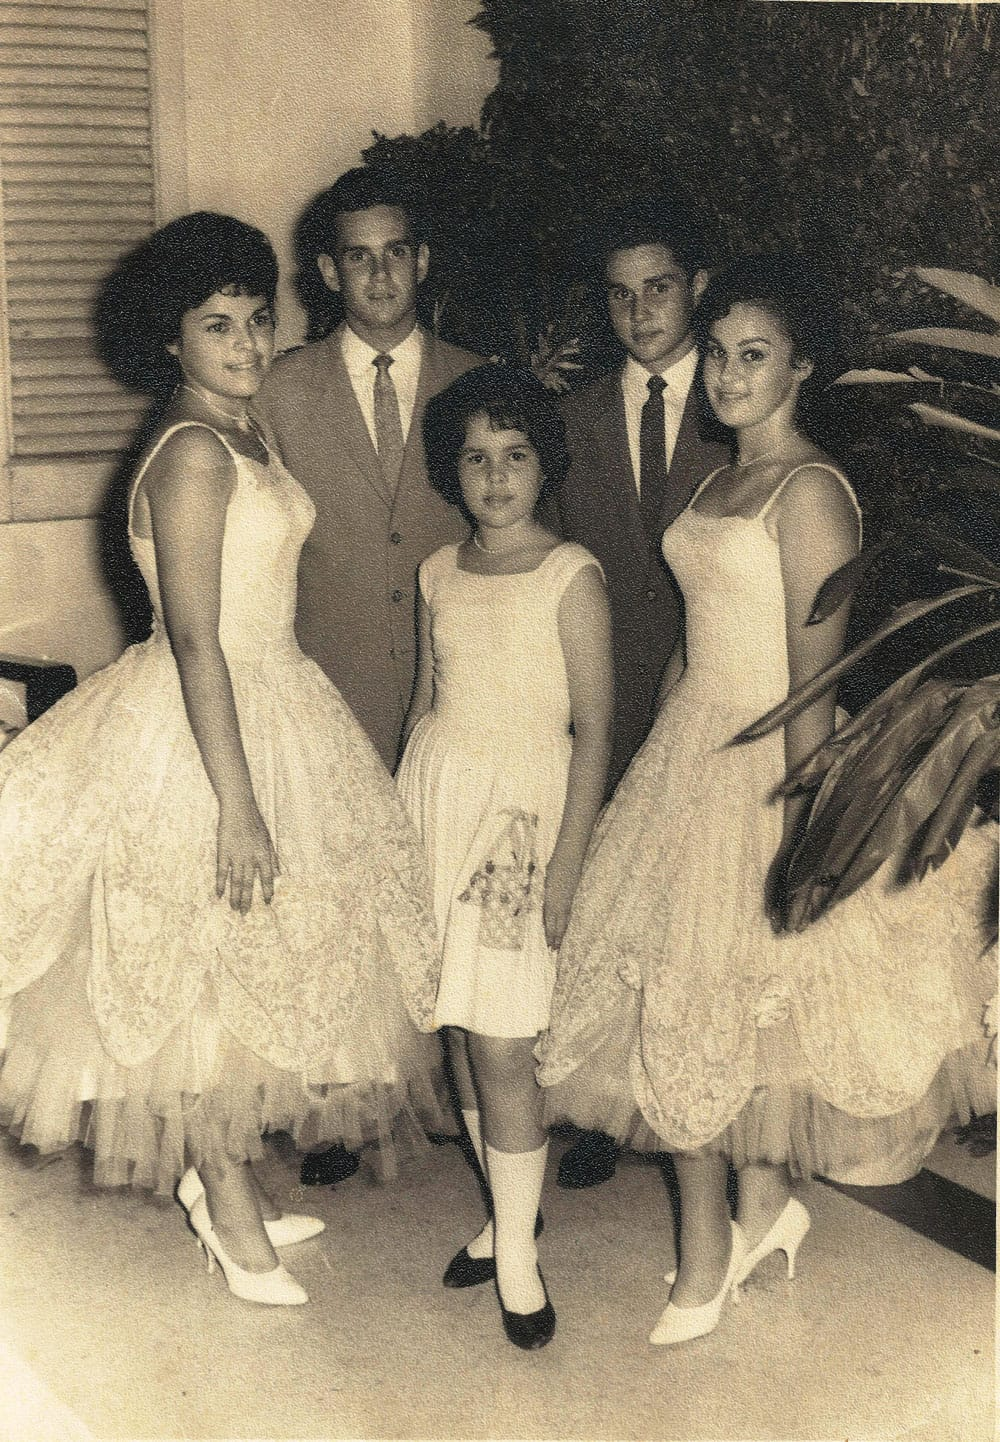 The last picture Cary's mother Mercedes took with Pepe, in June of 1964 before she and her family left Cuba. Mercedes is the girl to the left and Pepe is the tallest boy standing next to her.